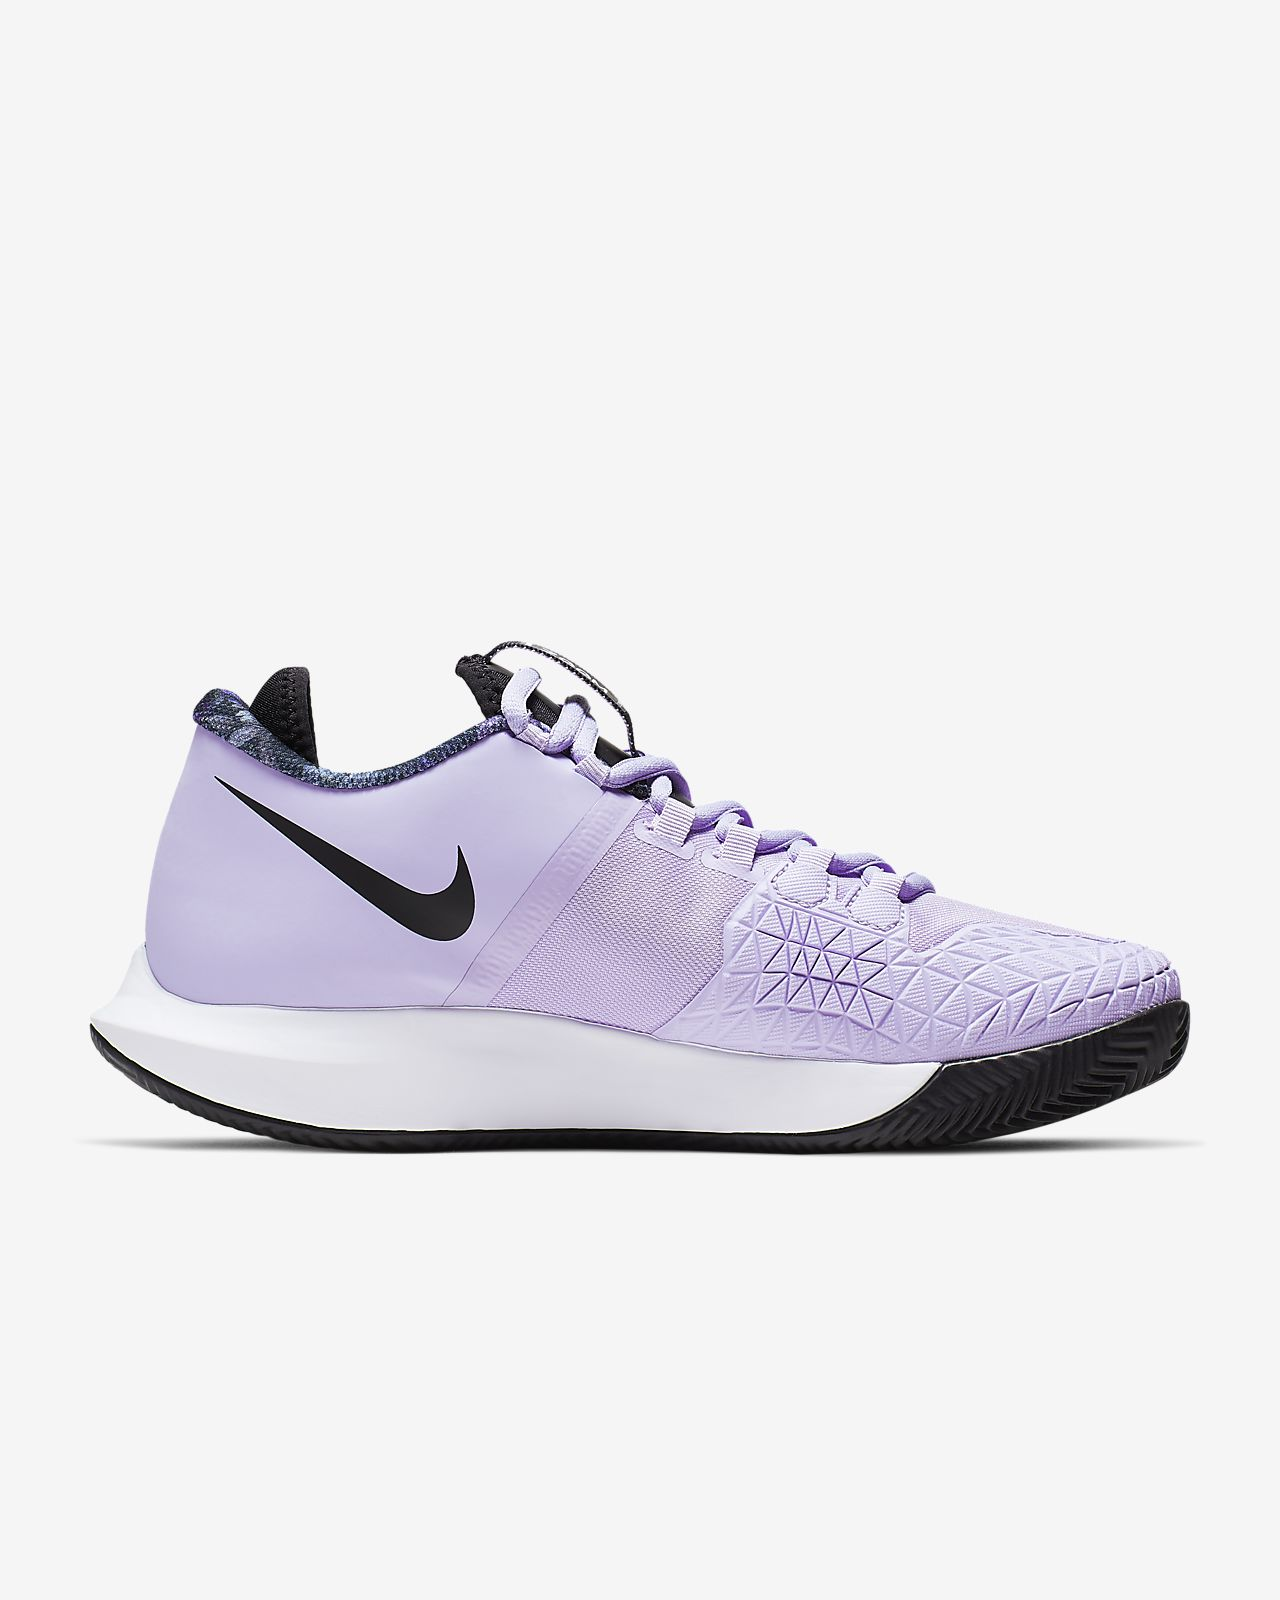 ae8dff5910 NikeCourt Air Zoom Zero Women's Clay Tennis Shoe. Nike.com GB